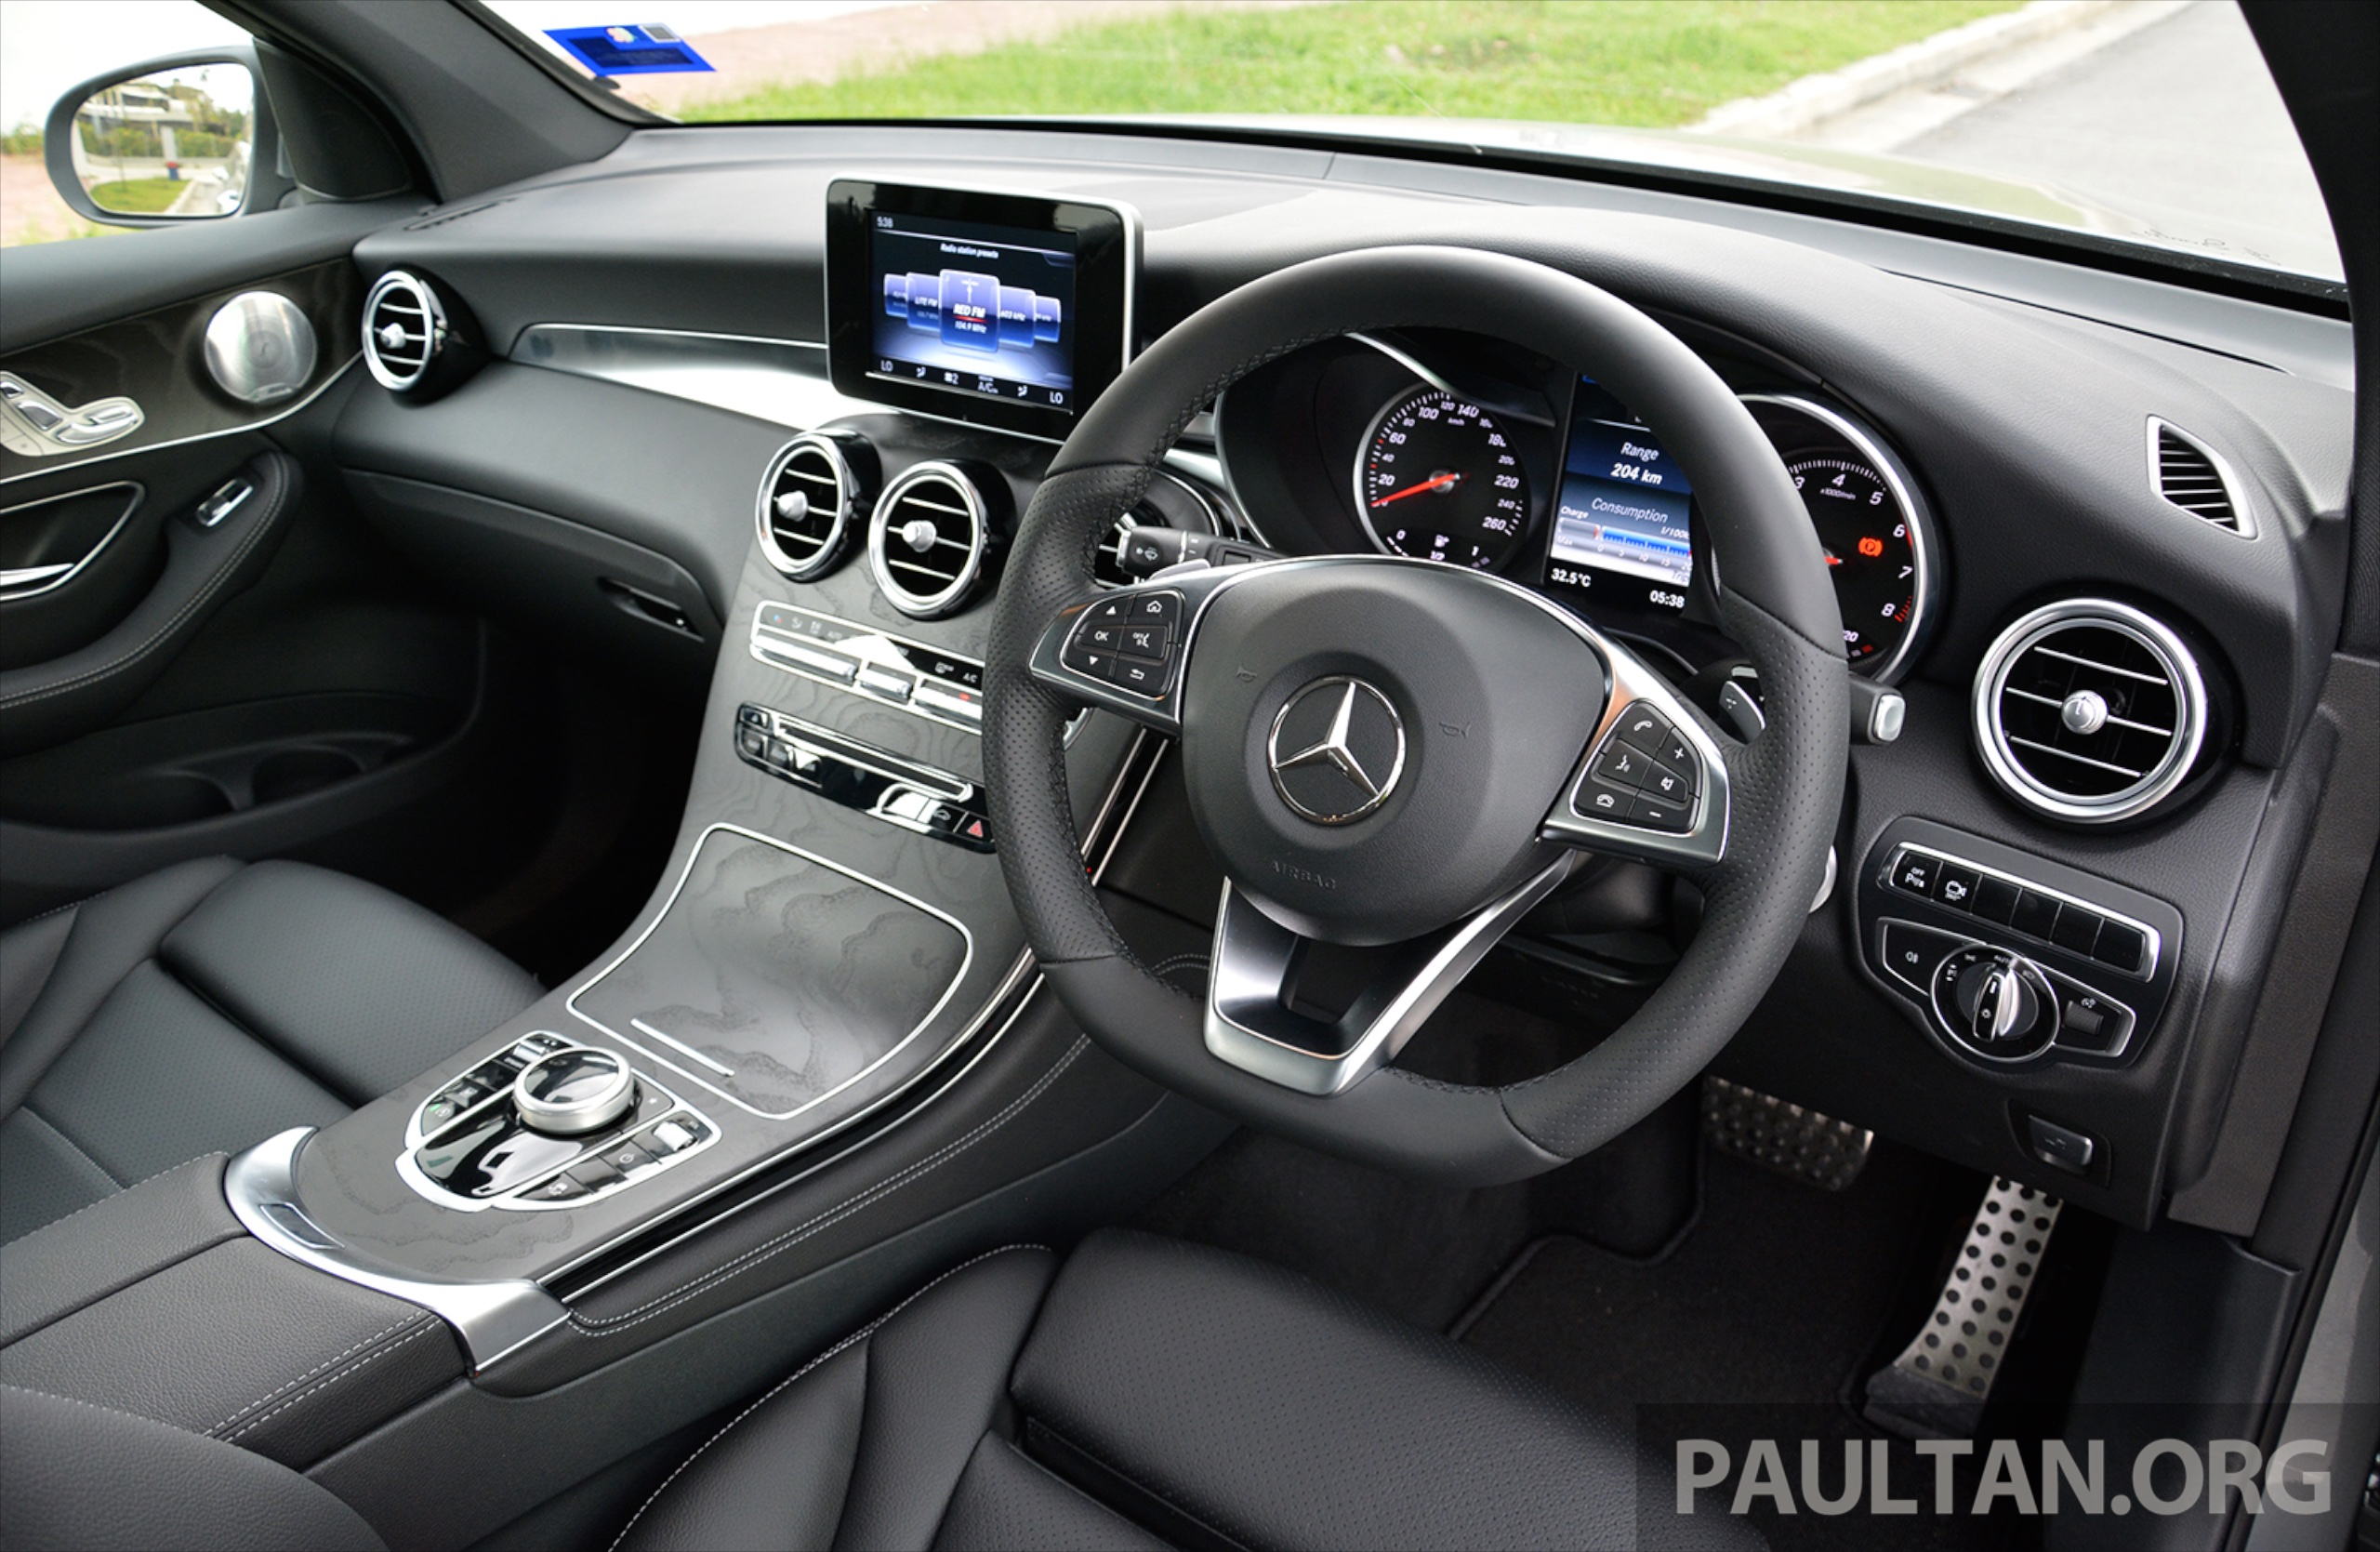 Mercedes Benz Glc 250 Debuts In Malaysia Rm329k Image 428641